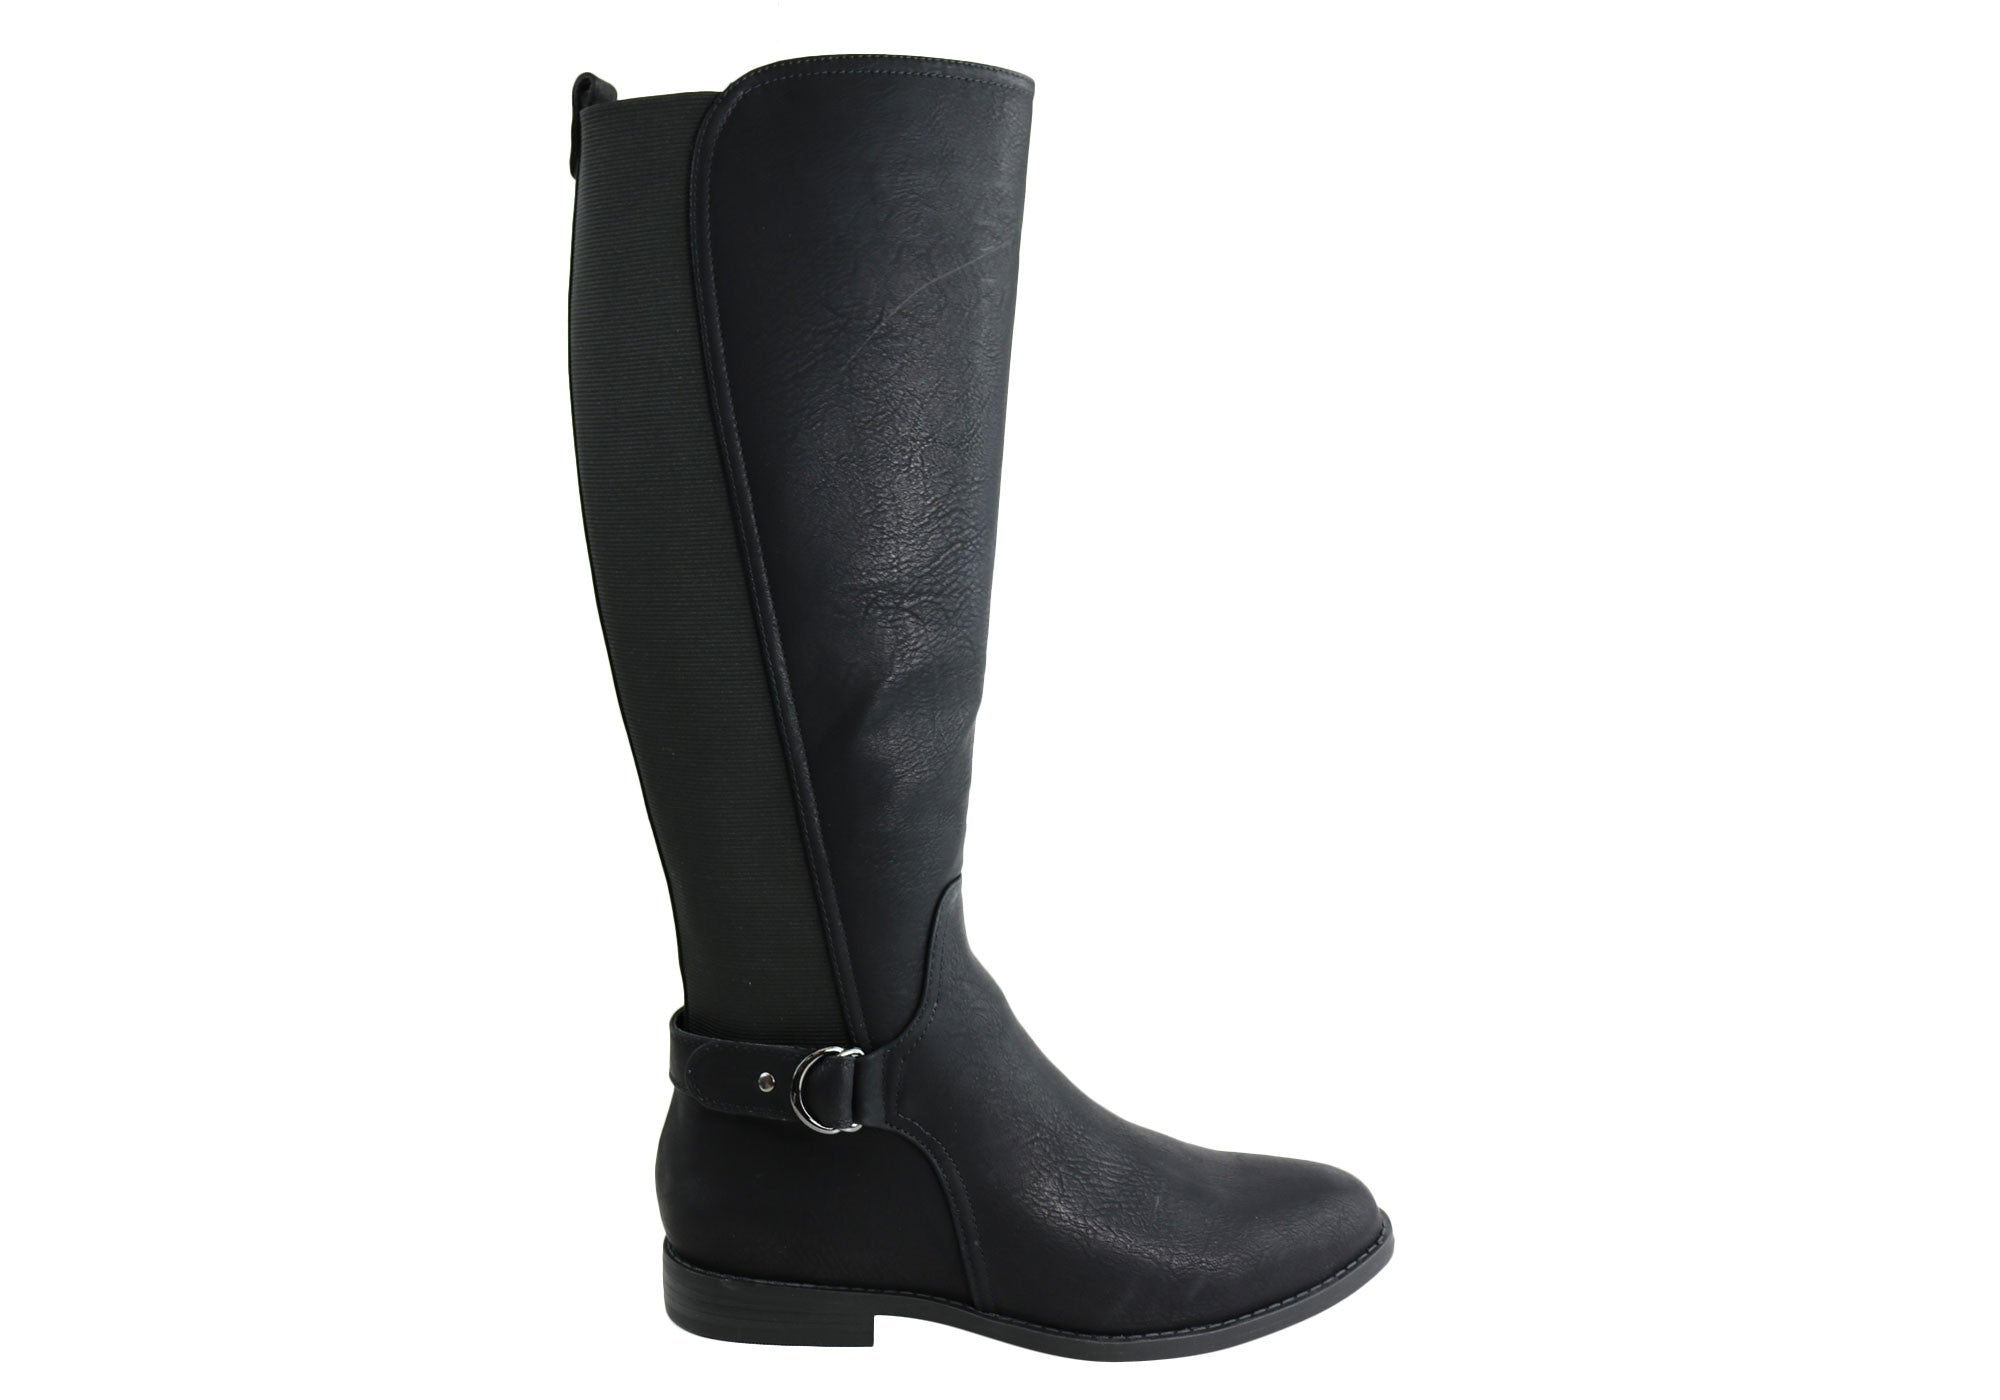 749a78973a6 Bellissimo Rebel Womens Comfort Flat Knee High Wide Calf Boots ...